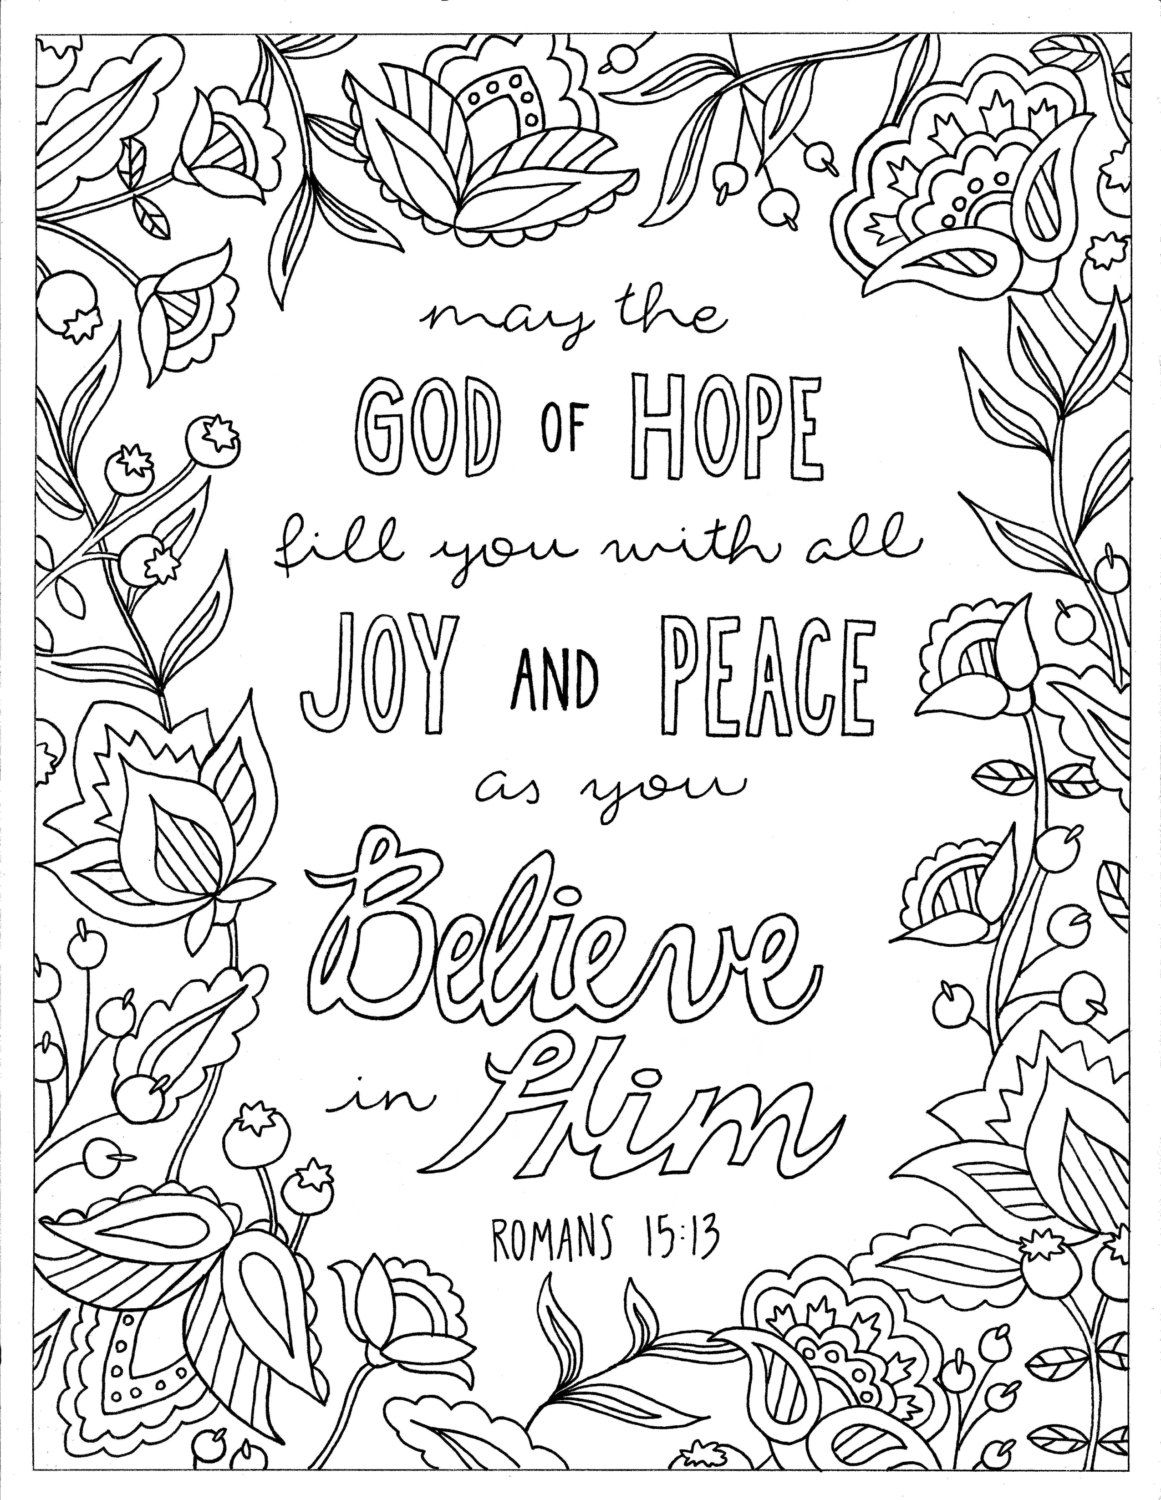 God Of Hope Coloring Page Romans 15 13 Printable Coloring Christian Coloring Inspirational Coloring Instant Digital Download Bible Verse Coloring Page Christian Coloring Bible Verse Coloring